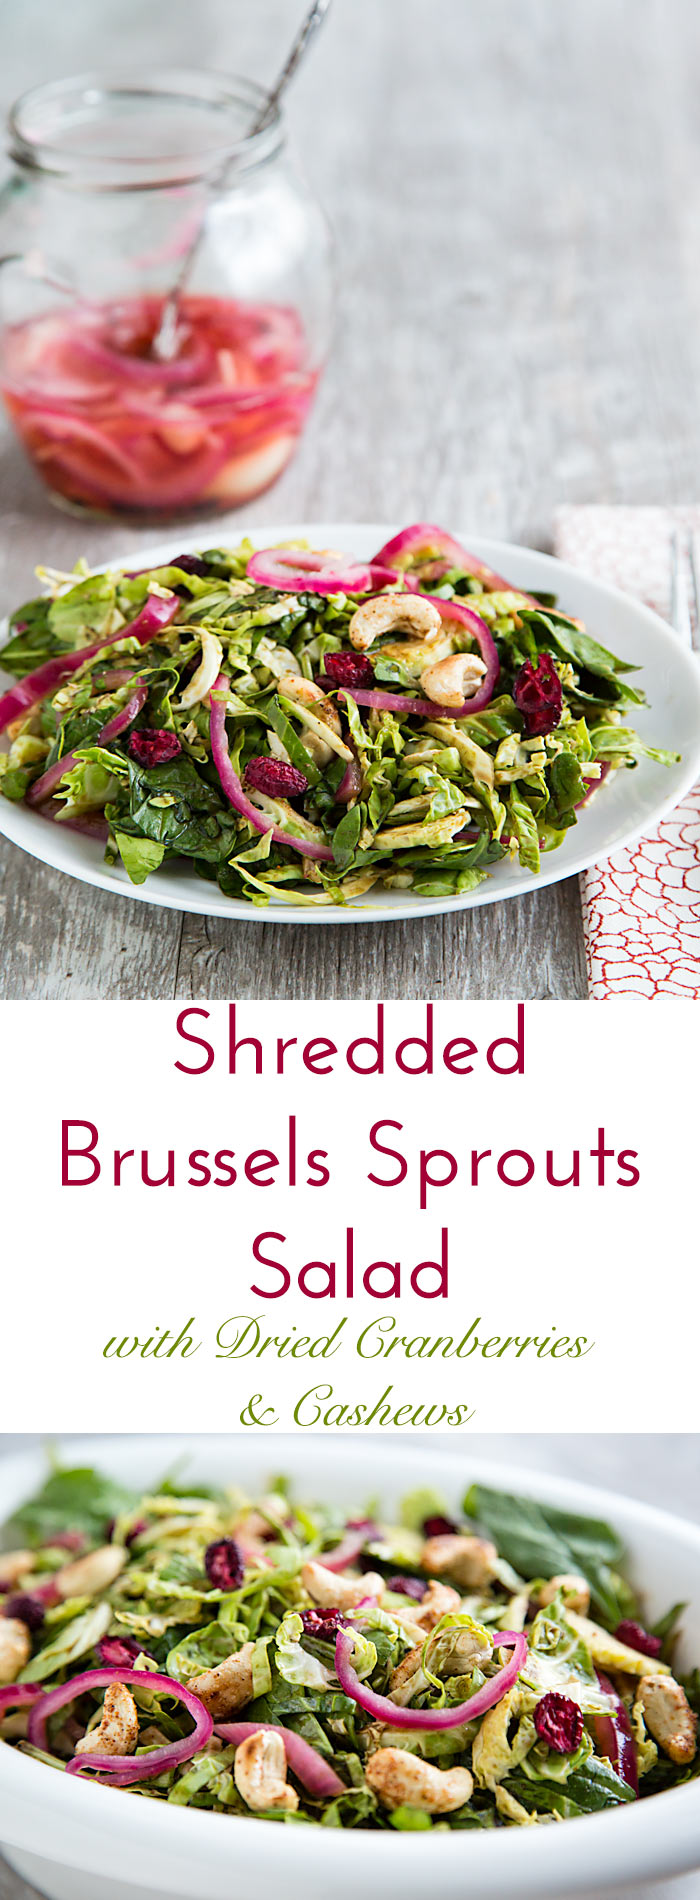 Dried cranberries, spiced cashews, pickled red onion, and a tangy maple-mustard vinaigrette make this oil-free shredded Brussels Sprouts salad sparkle with flavor. Naturally vegan and gluten-free.